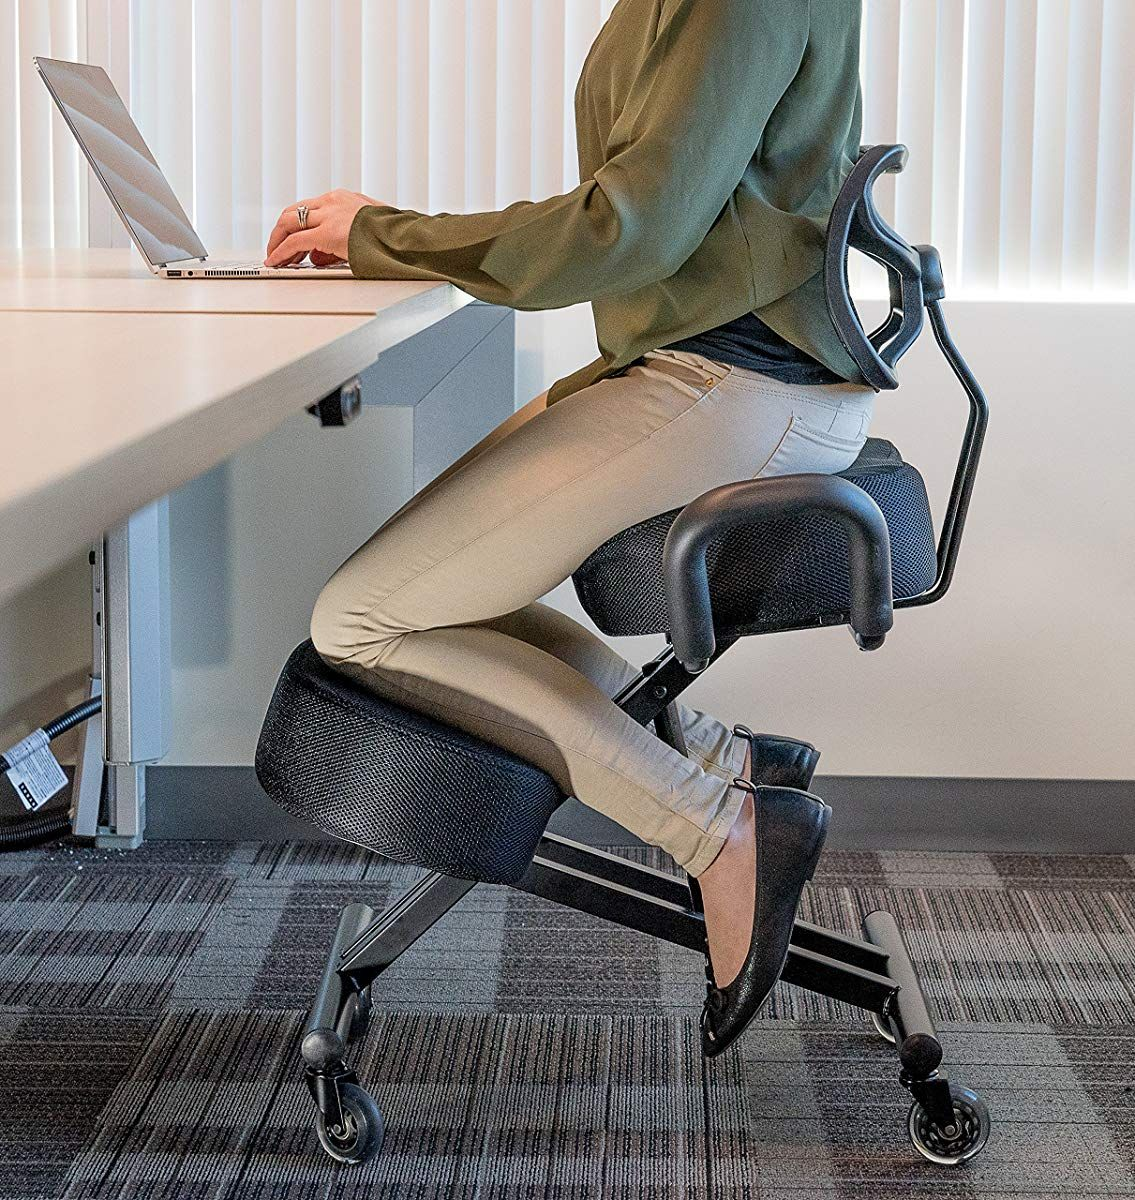 Sleekform Kneeling Chair For Perfect Posture Kneeling Chair